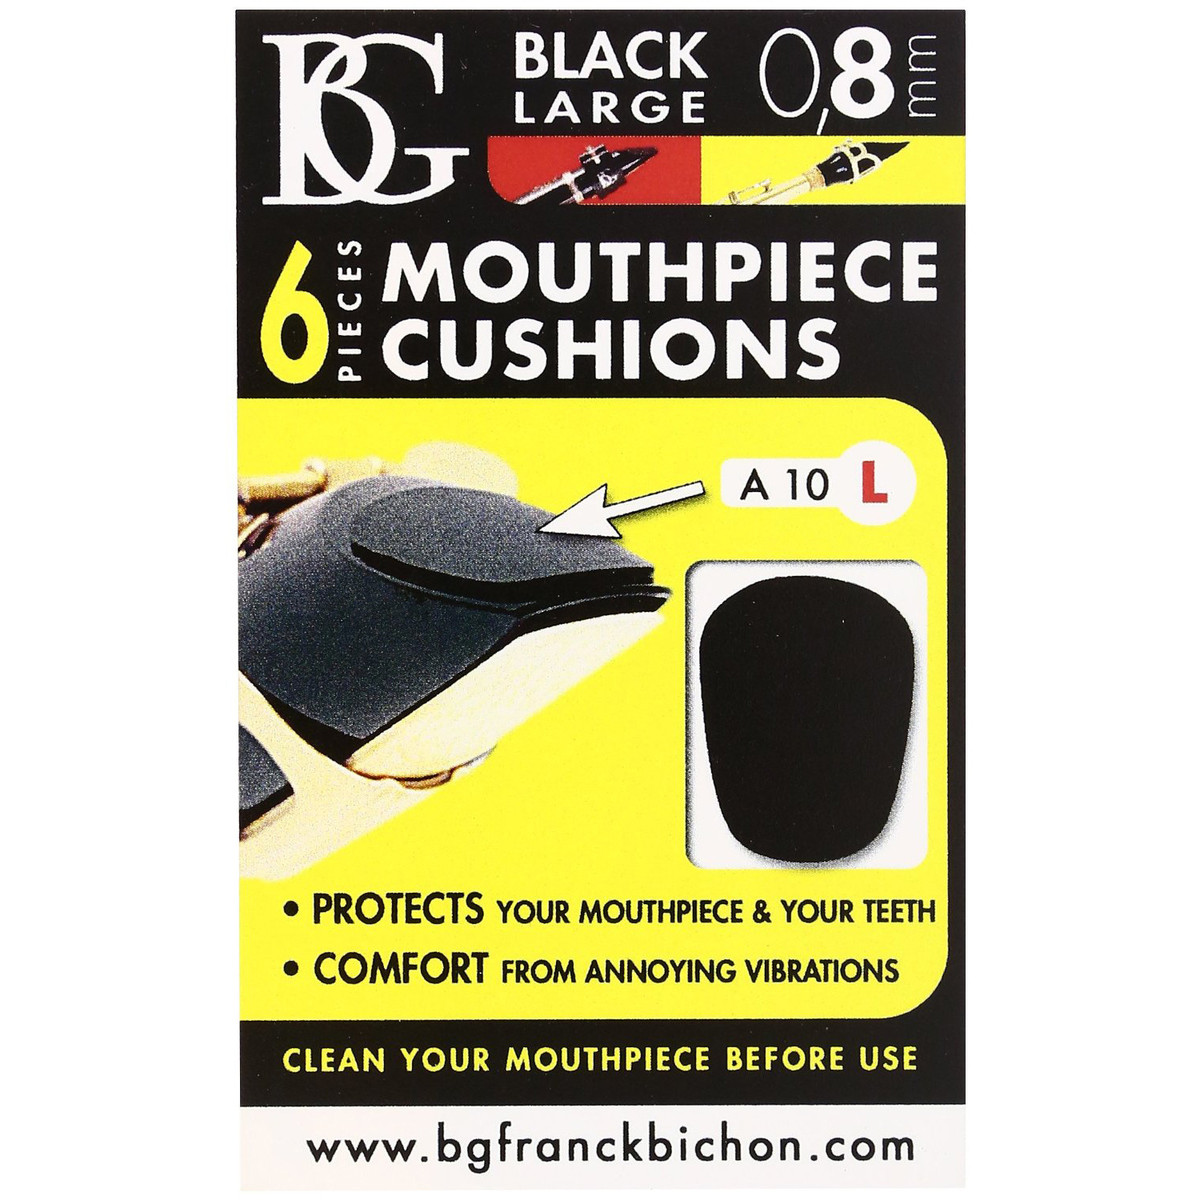 Image of BG Mouthpiece Cushion Sax and Clarinet Large 0.8MM (Pack Of 6)